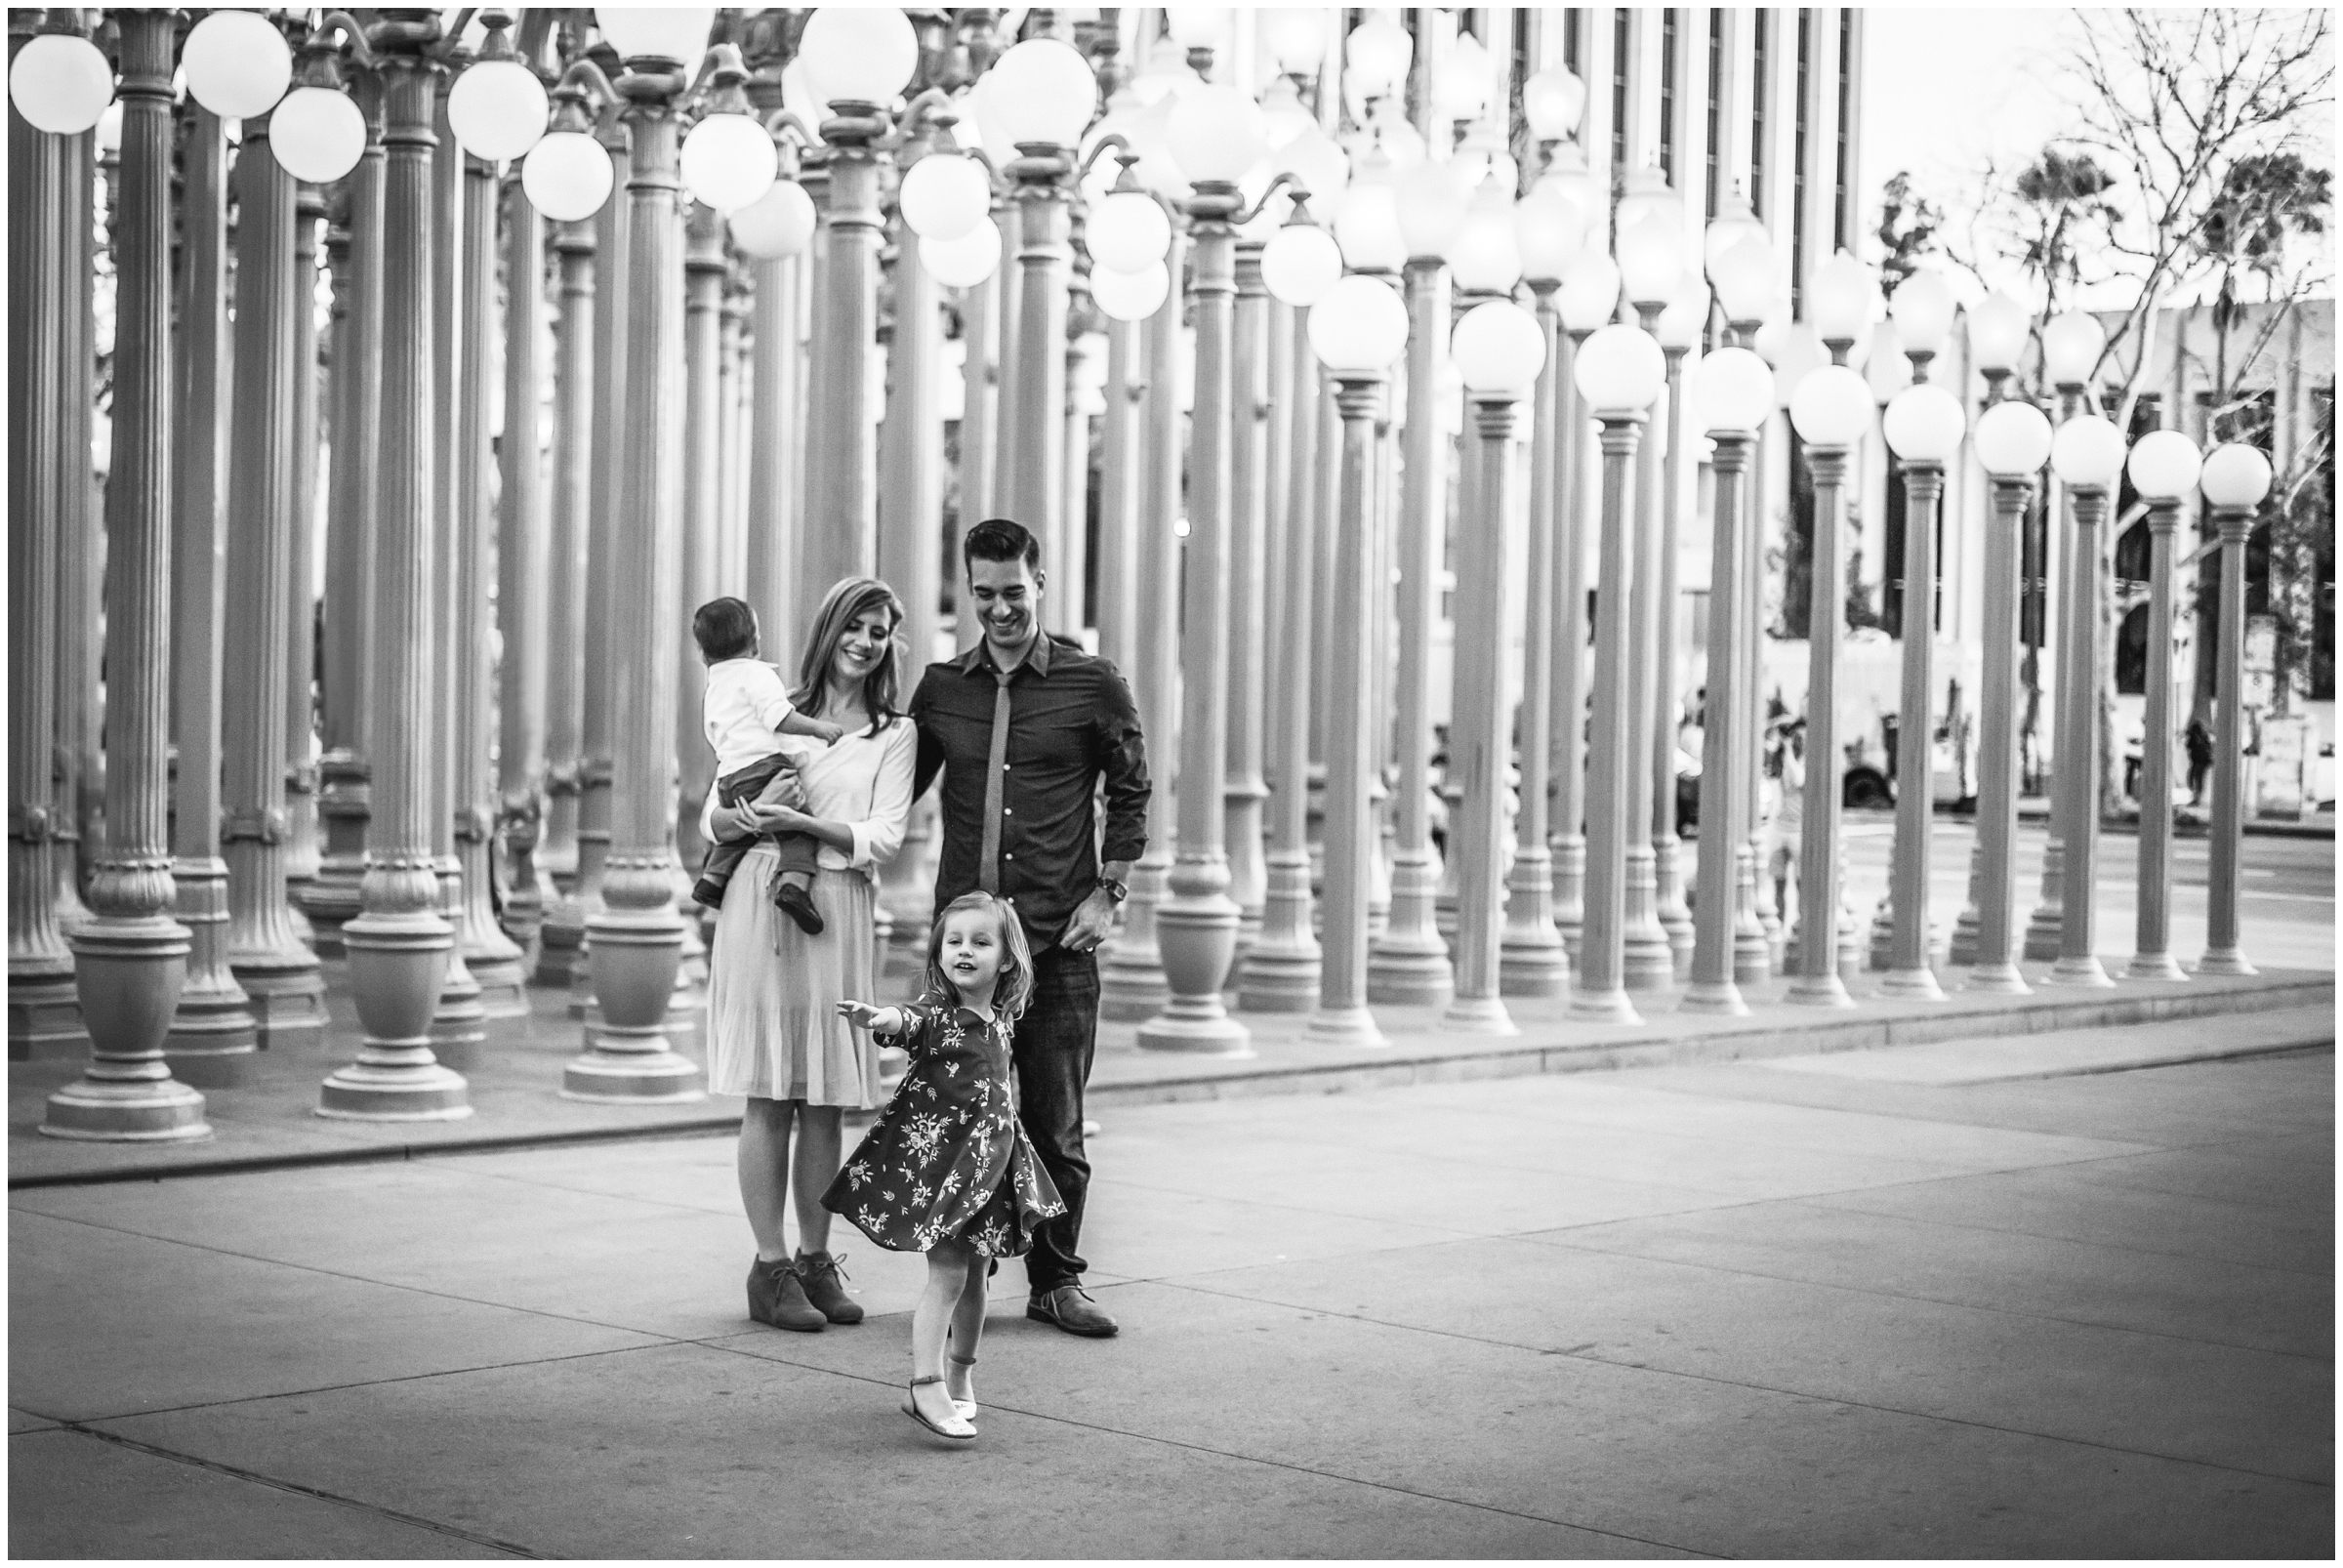 Family Portraits at LACMA Lightposts by Just Maggie Photography - Los Angeles Family Photographer